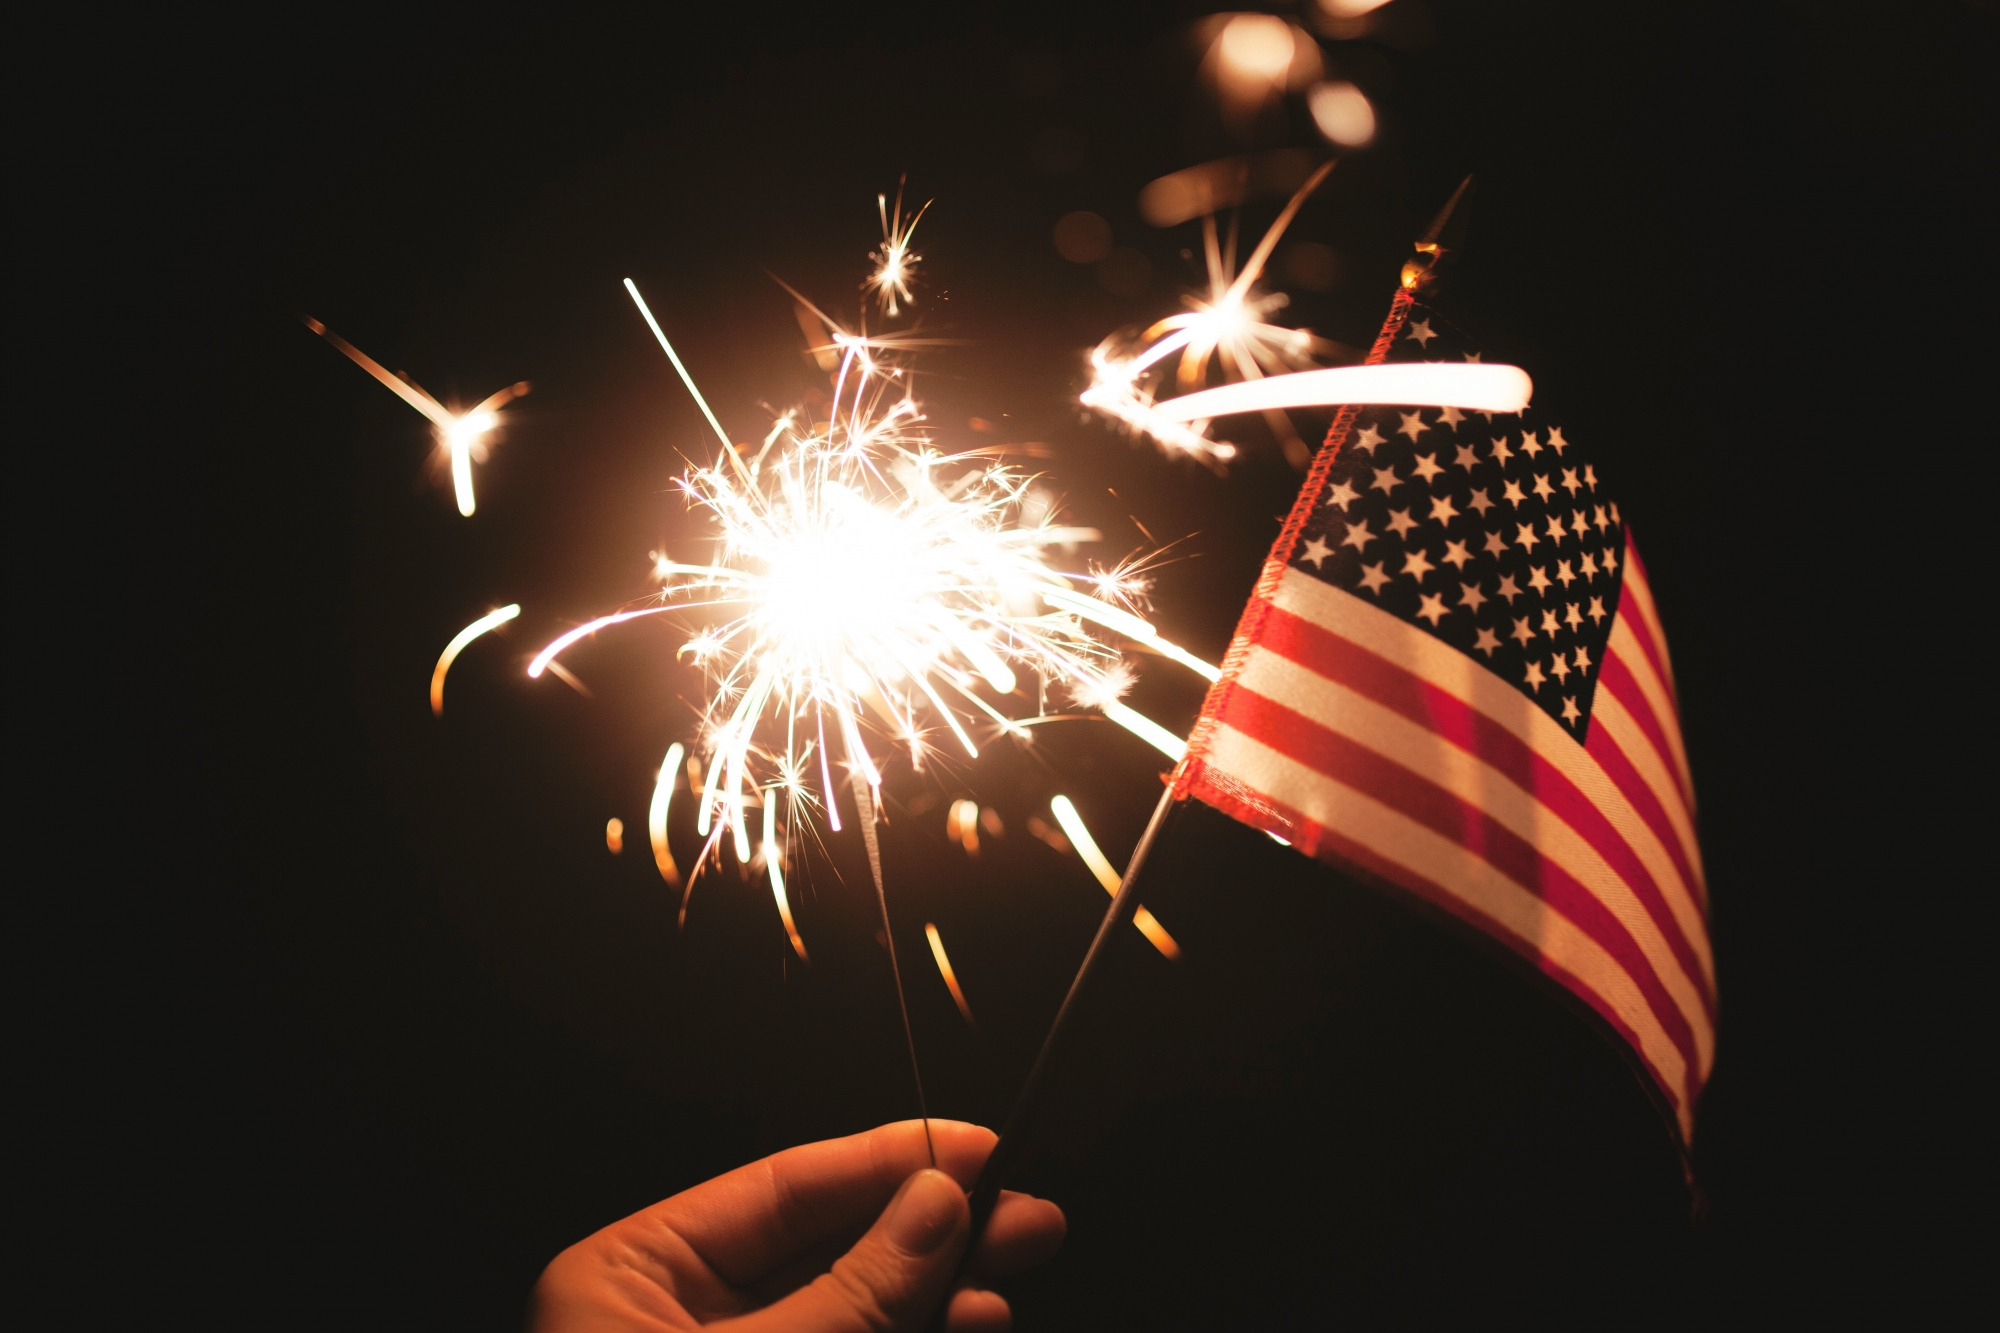 A hand holds a sparkler firework and a small Flag of the United States of America.